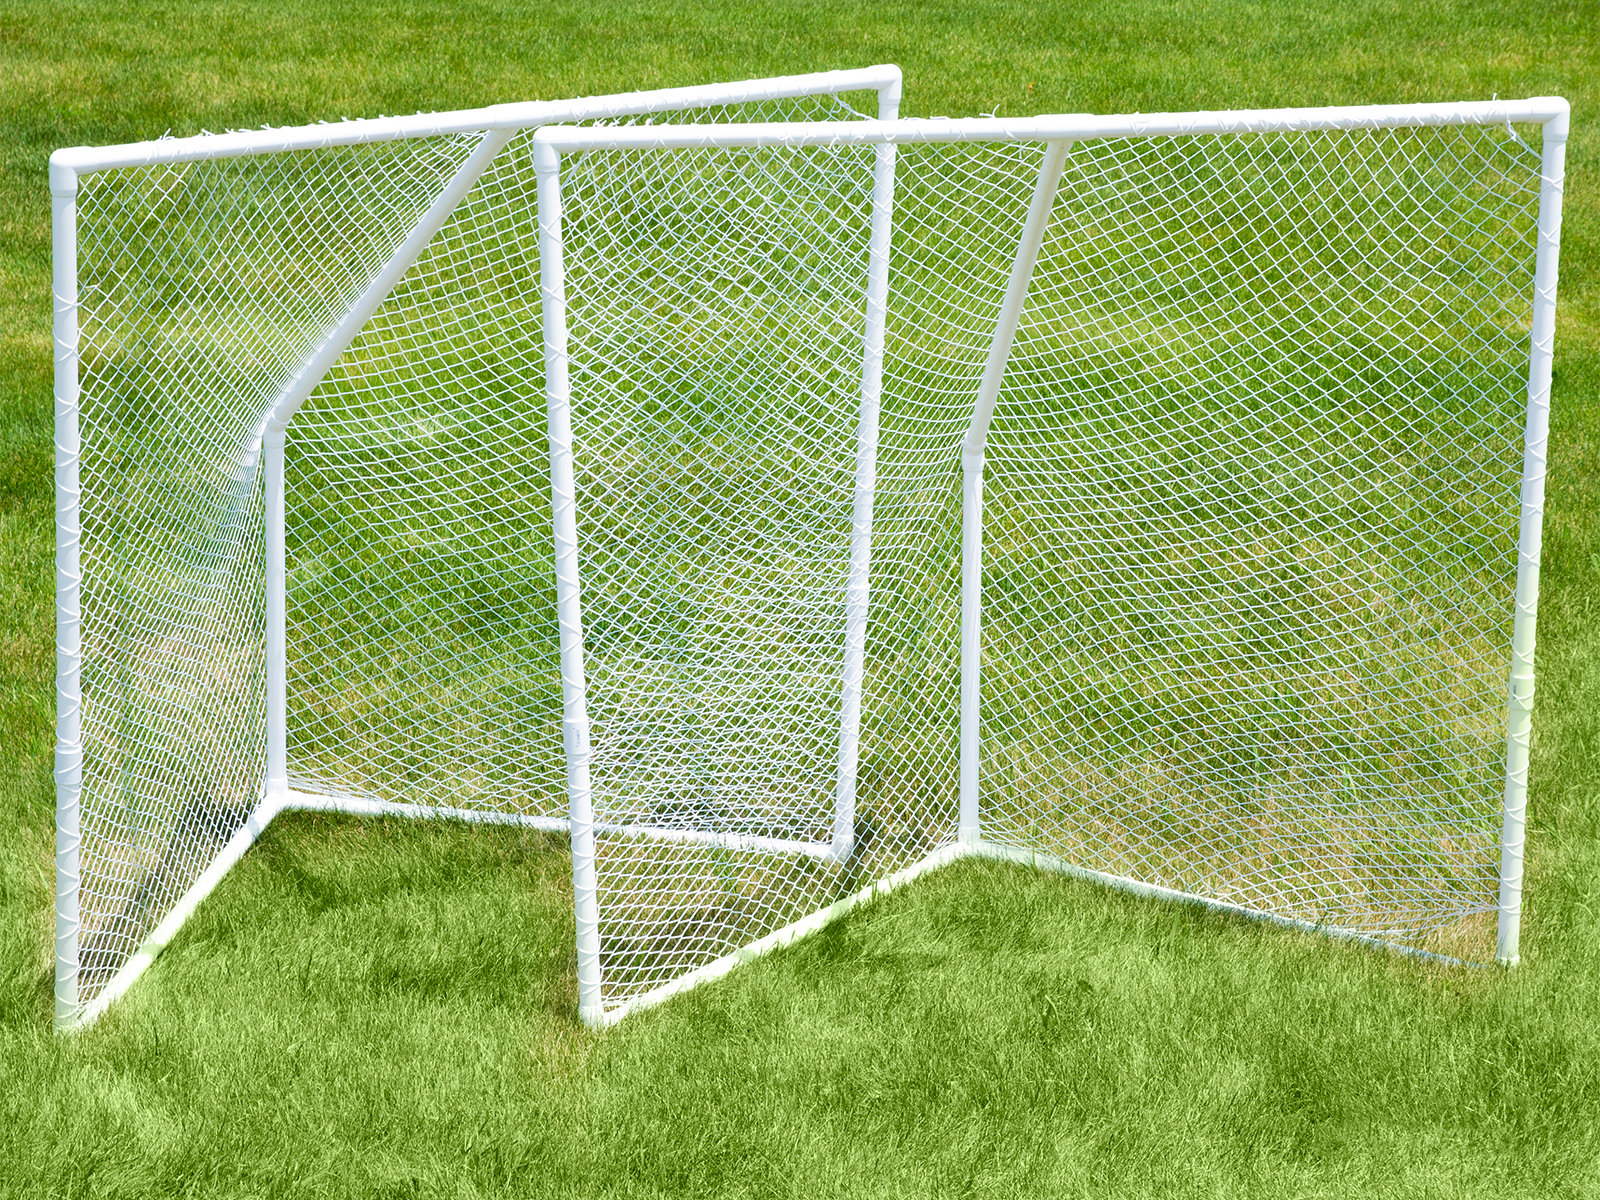 Durable PVC goals withstand outdoor use